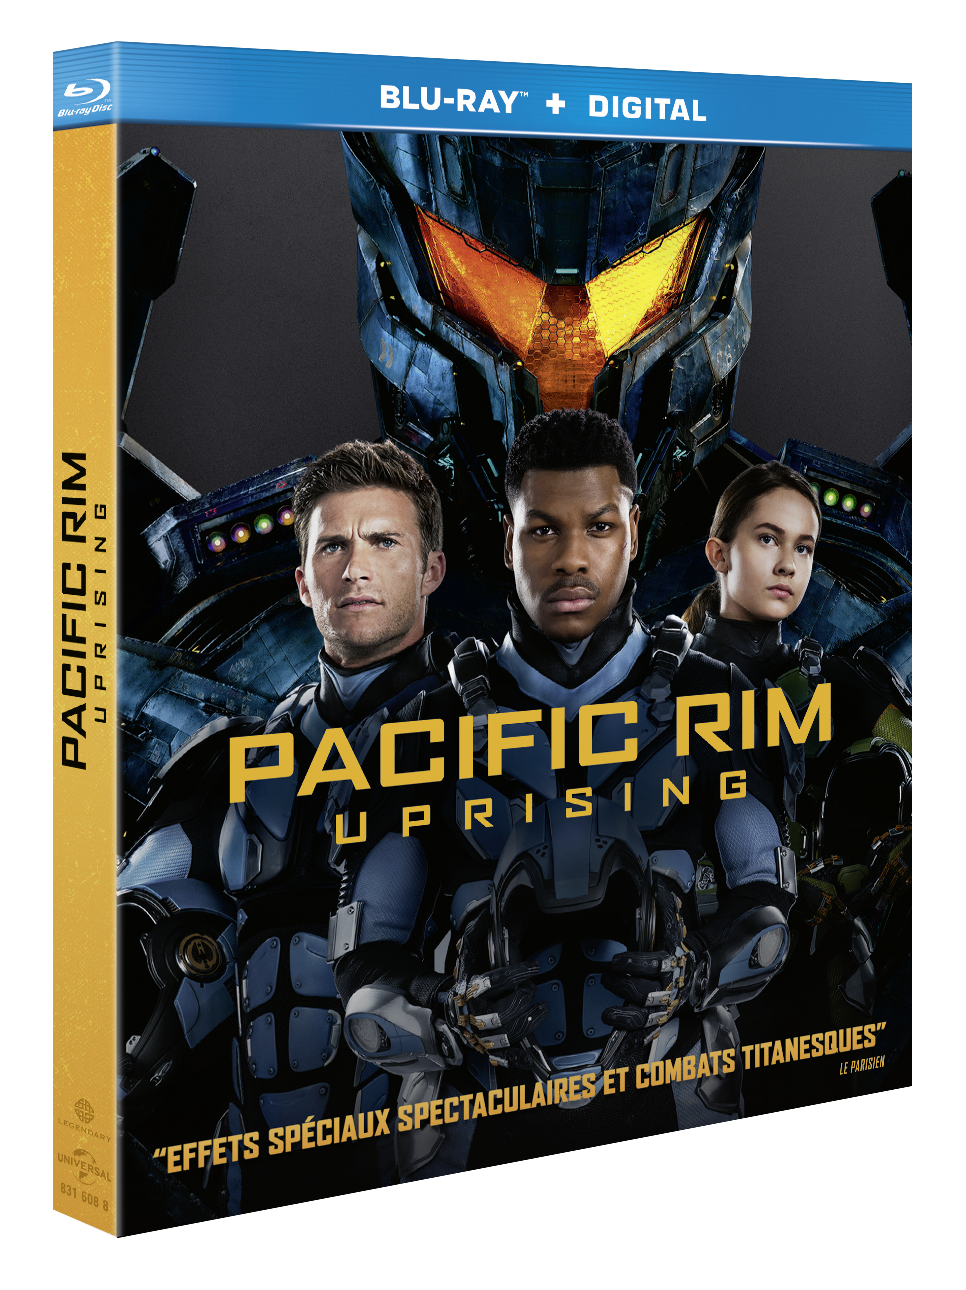 [REVUE CINEMA BLU-RAY] PACIFIC RIM UPRISING